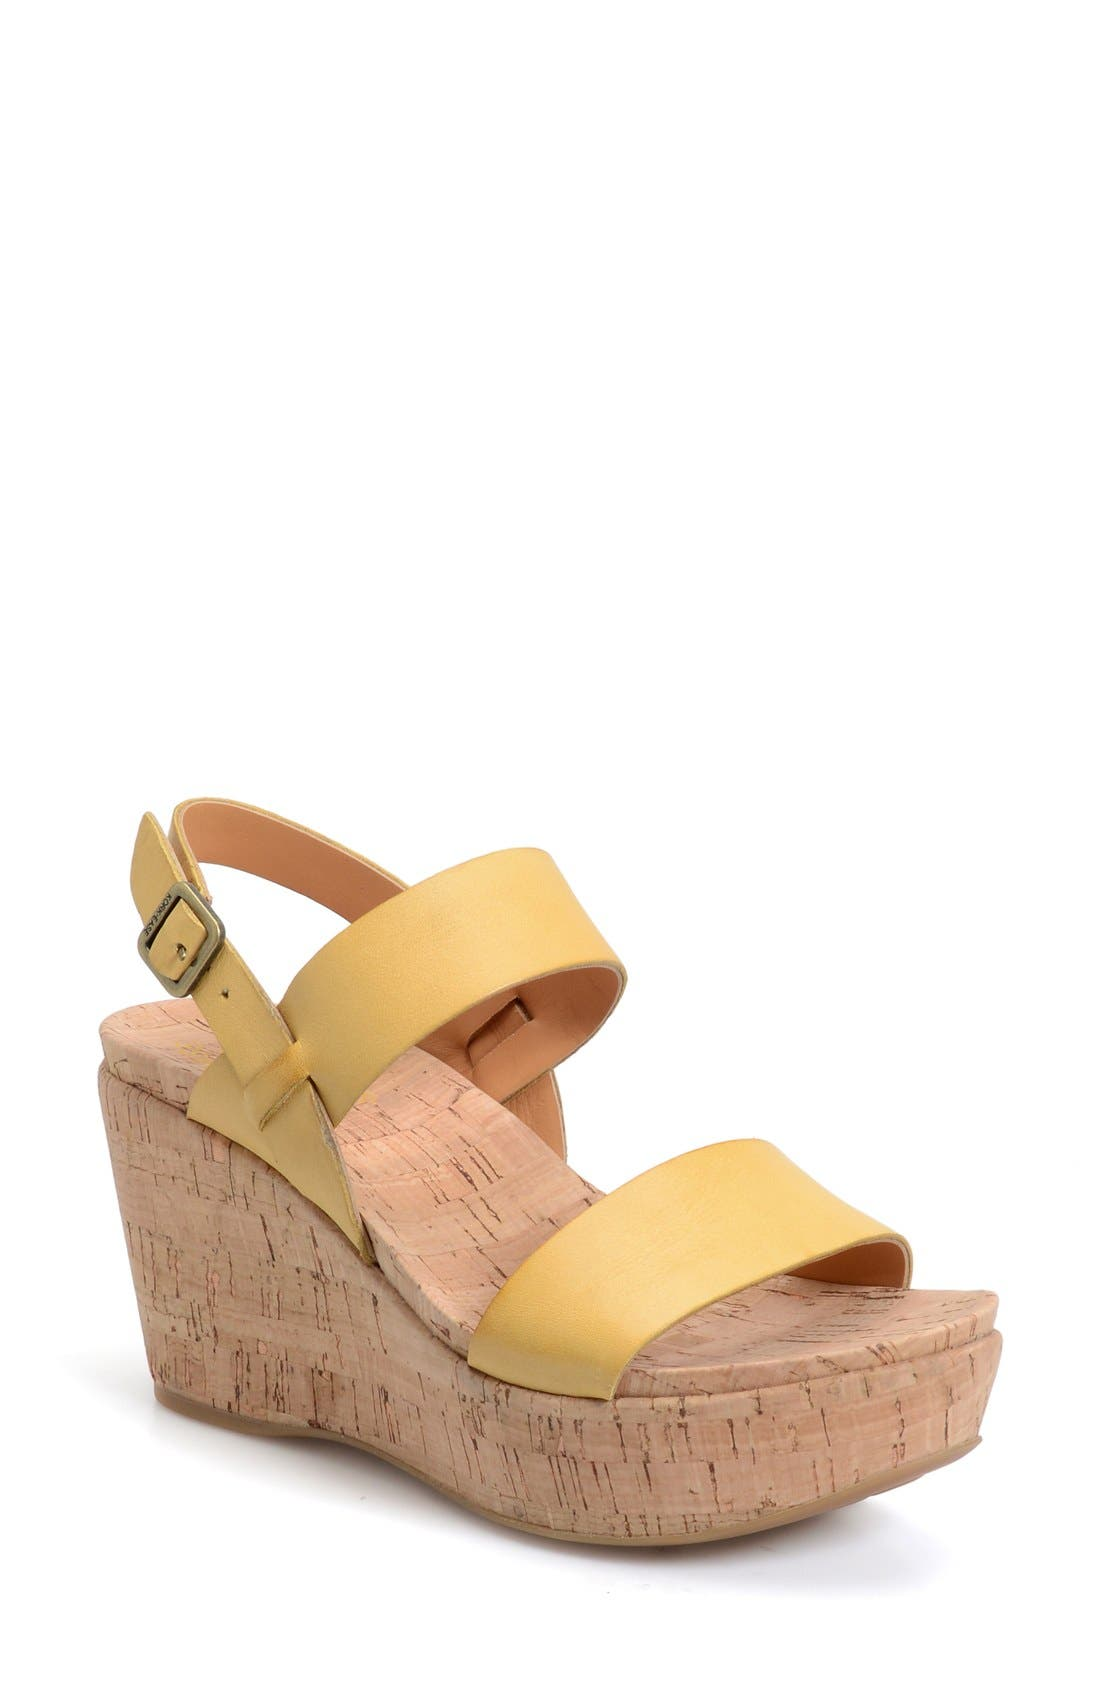 Main Image - Kork-Ease® 'Austin' Slingback Wedge Sandal (Women)